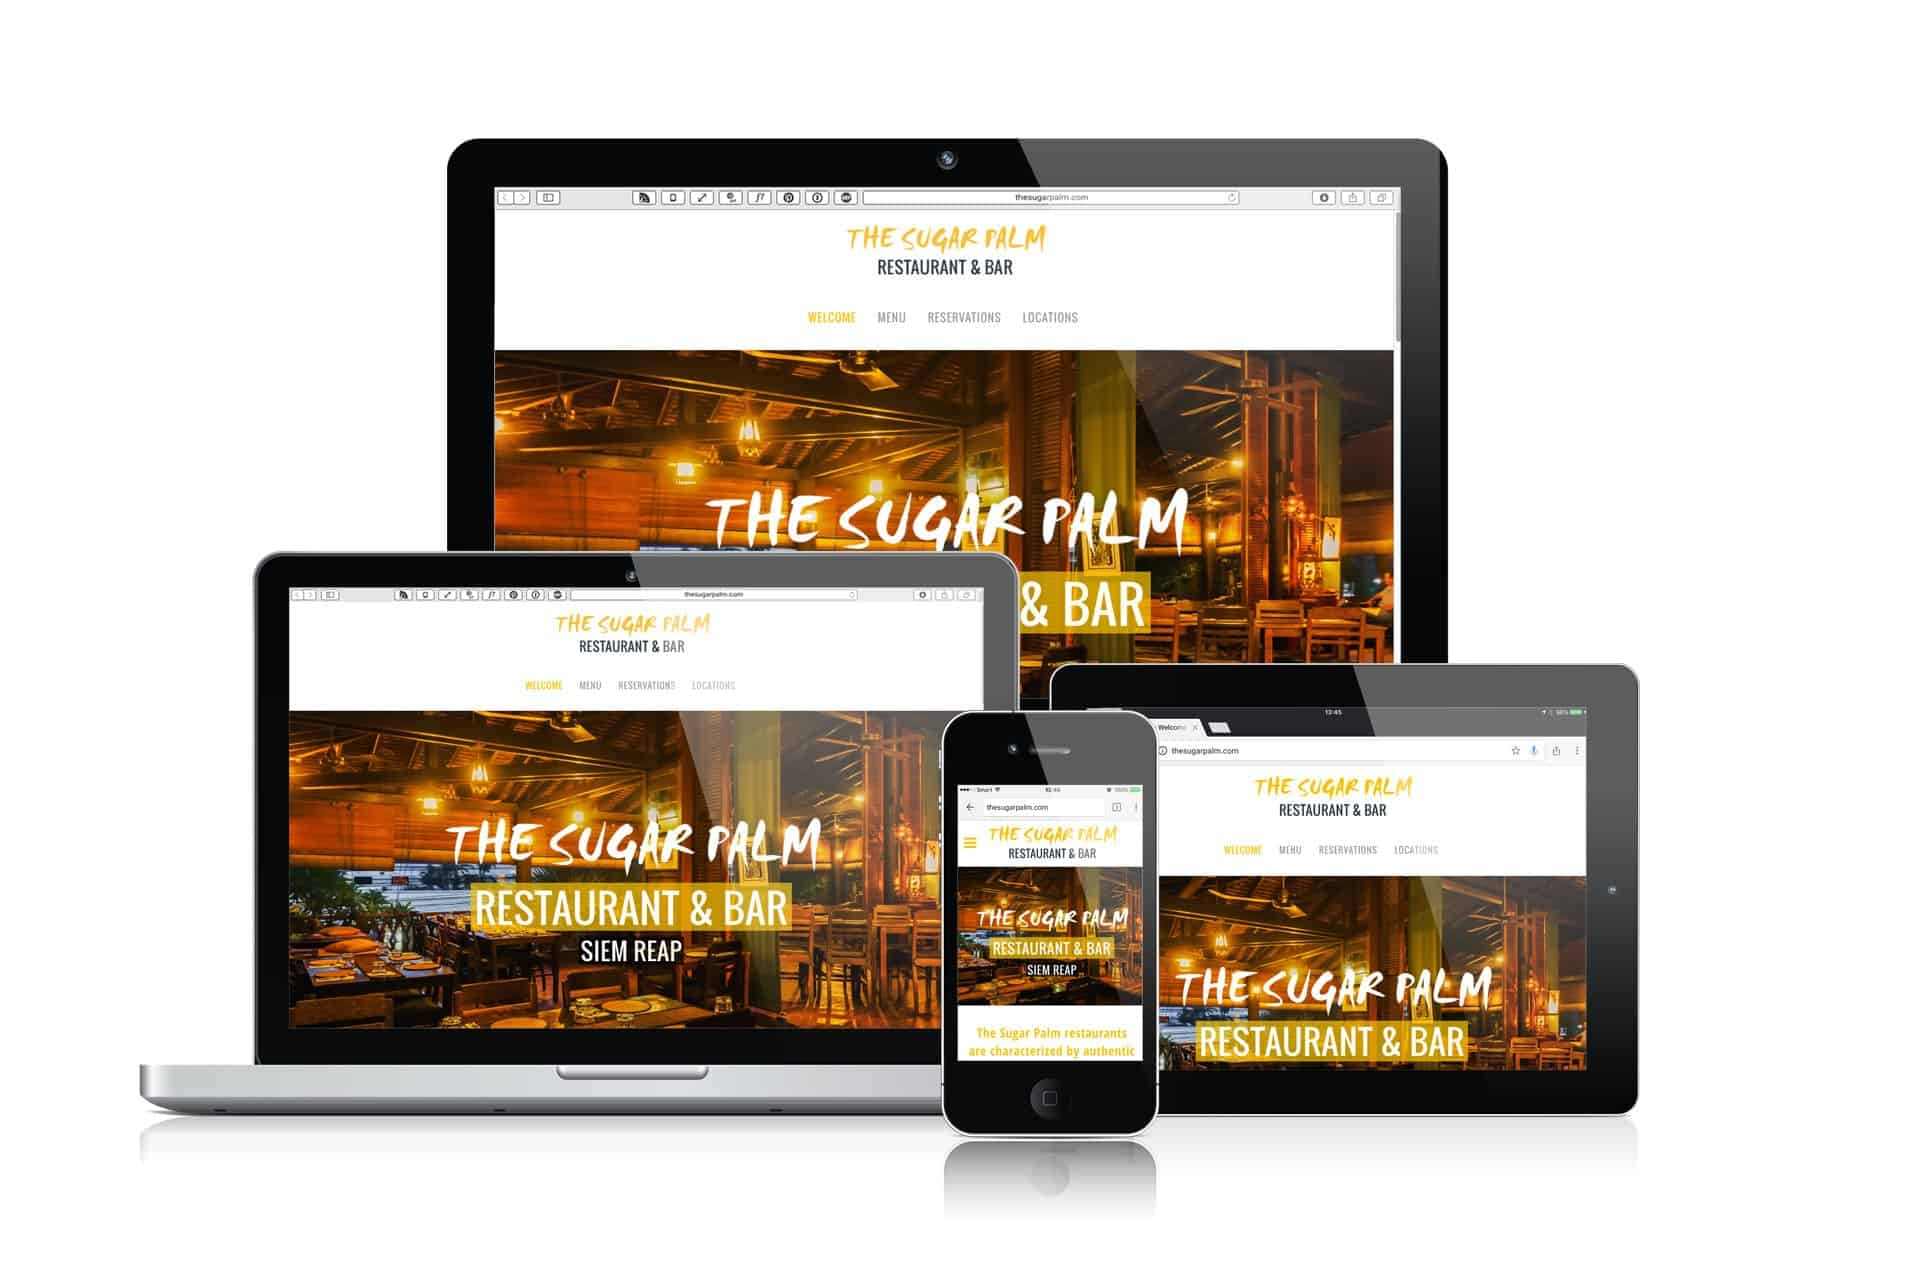 The Sugar Palm Restaurant and Bar, Siem Reap and Phnom Penh. Web Design & Development by Grantourismo Media, a Full Service Digital Media Agency.